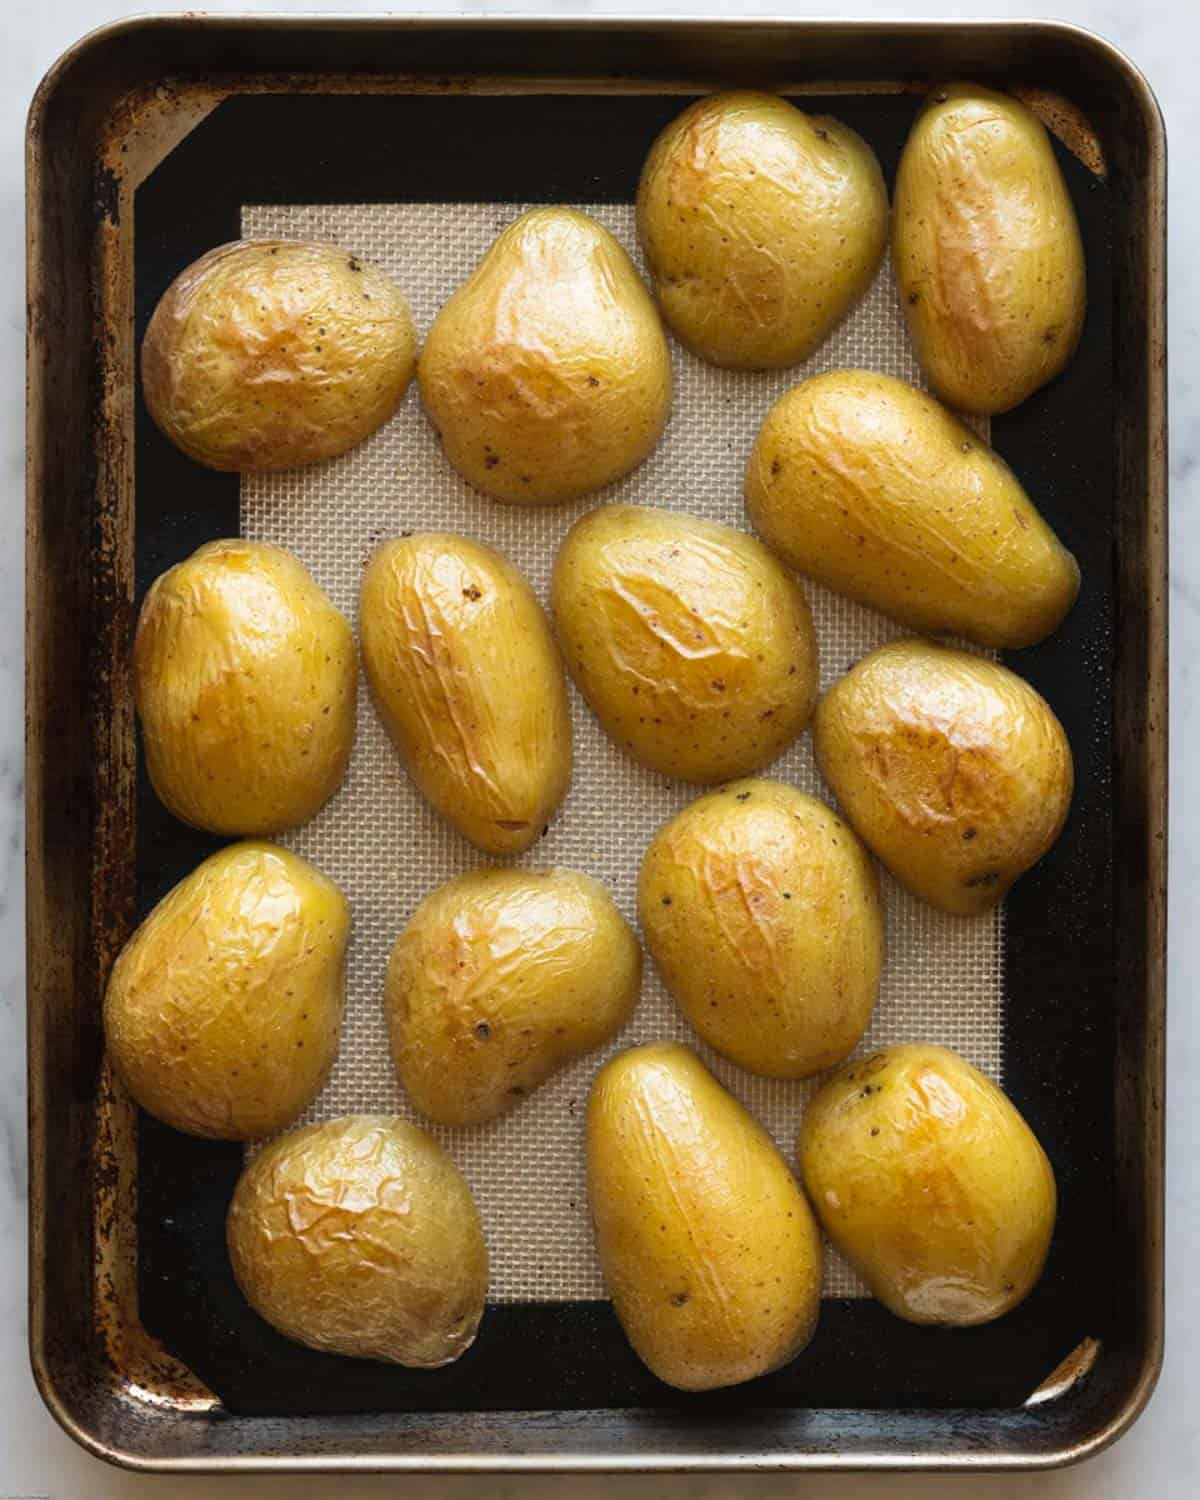 Sliced potatoes turned flat side down for roasting.